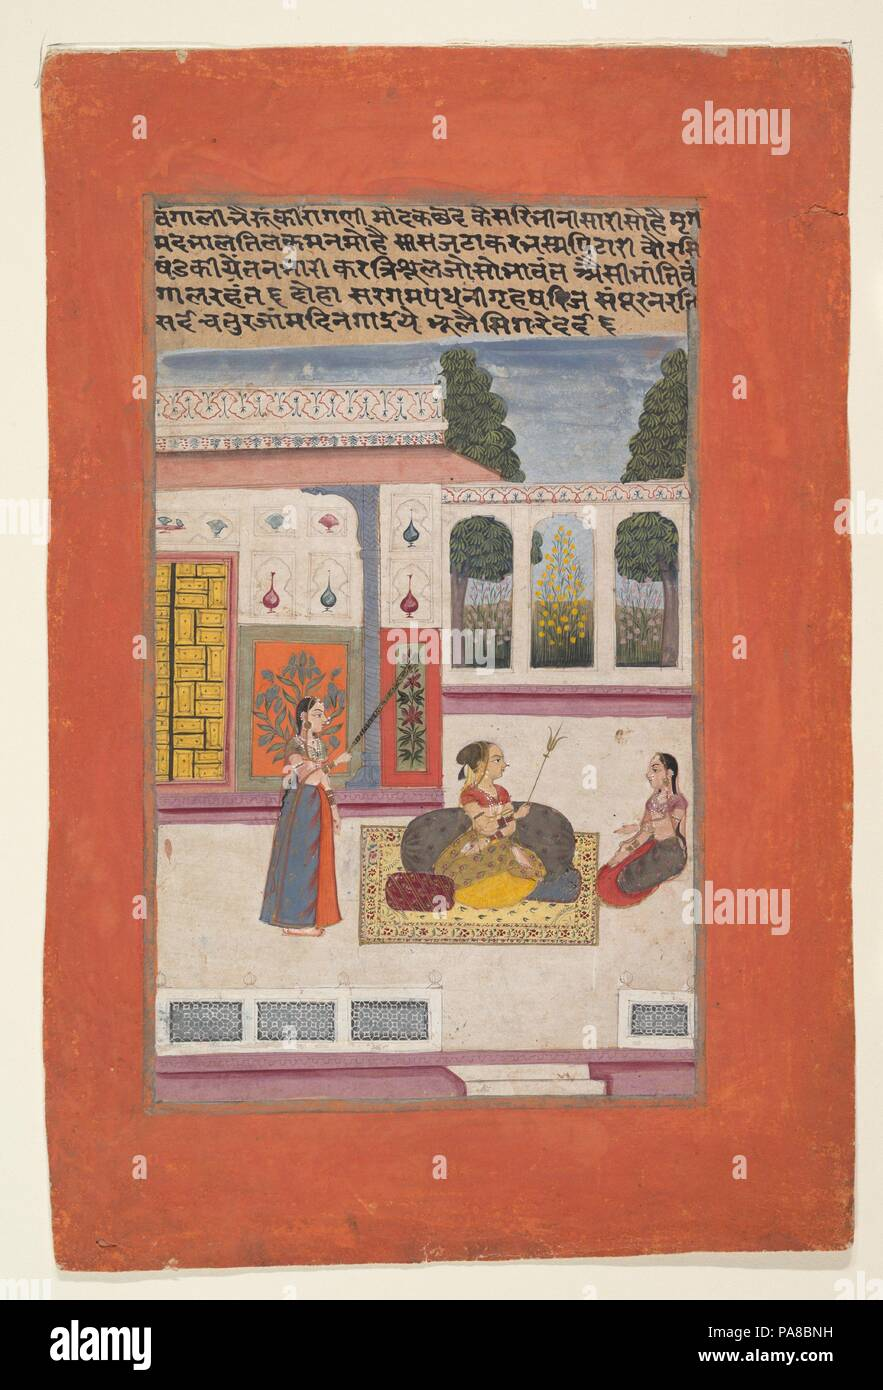 Bangali Ragini: Folio from a ragamala series (Garland of Musical Modes). Culture: India (Rajasthan, Amber). Dimensions: 13 3/4 x 9 1/8 in. (34.9 x 23.2 cm). Date: 1709.  The Amber ragamala text of which this work is a part offers the following description of this ragini: 'Her sari, soaked with kesara [saffron], is enchanting. [Her] musk caste mark at the forehead bewitches the mind. The lovable [woman has] matted locks and ash in her[?] palms. [She has] smeared srikhands [white sandalwood paste] all over her body. The trident in her arm is resplendent. Such is the beauty of Bangali.'. Museum:  - Stock Image